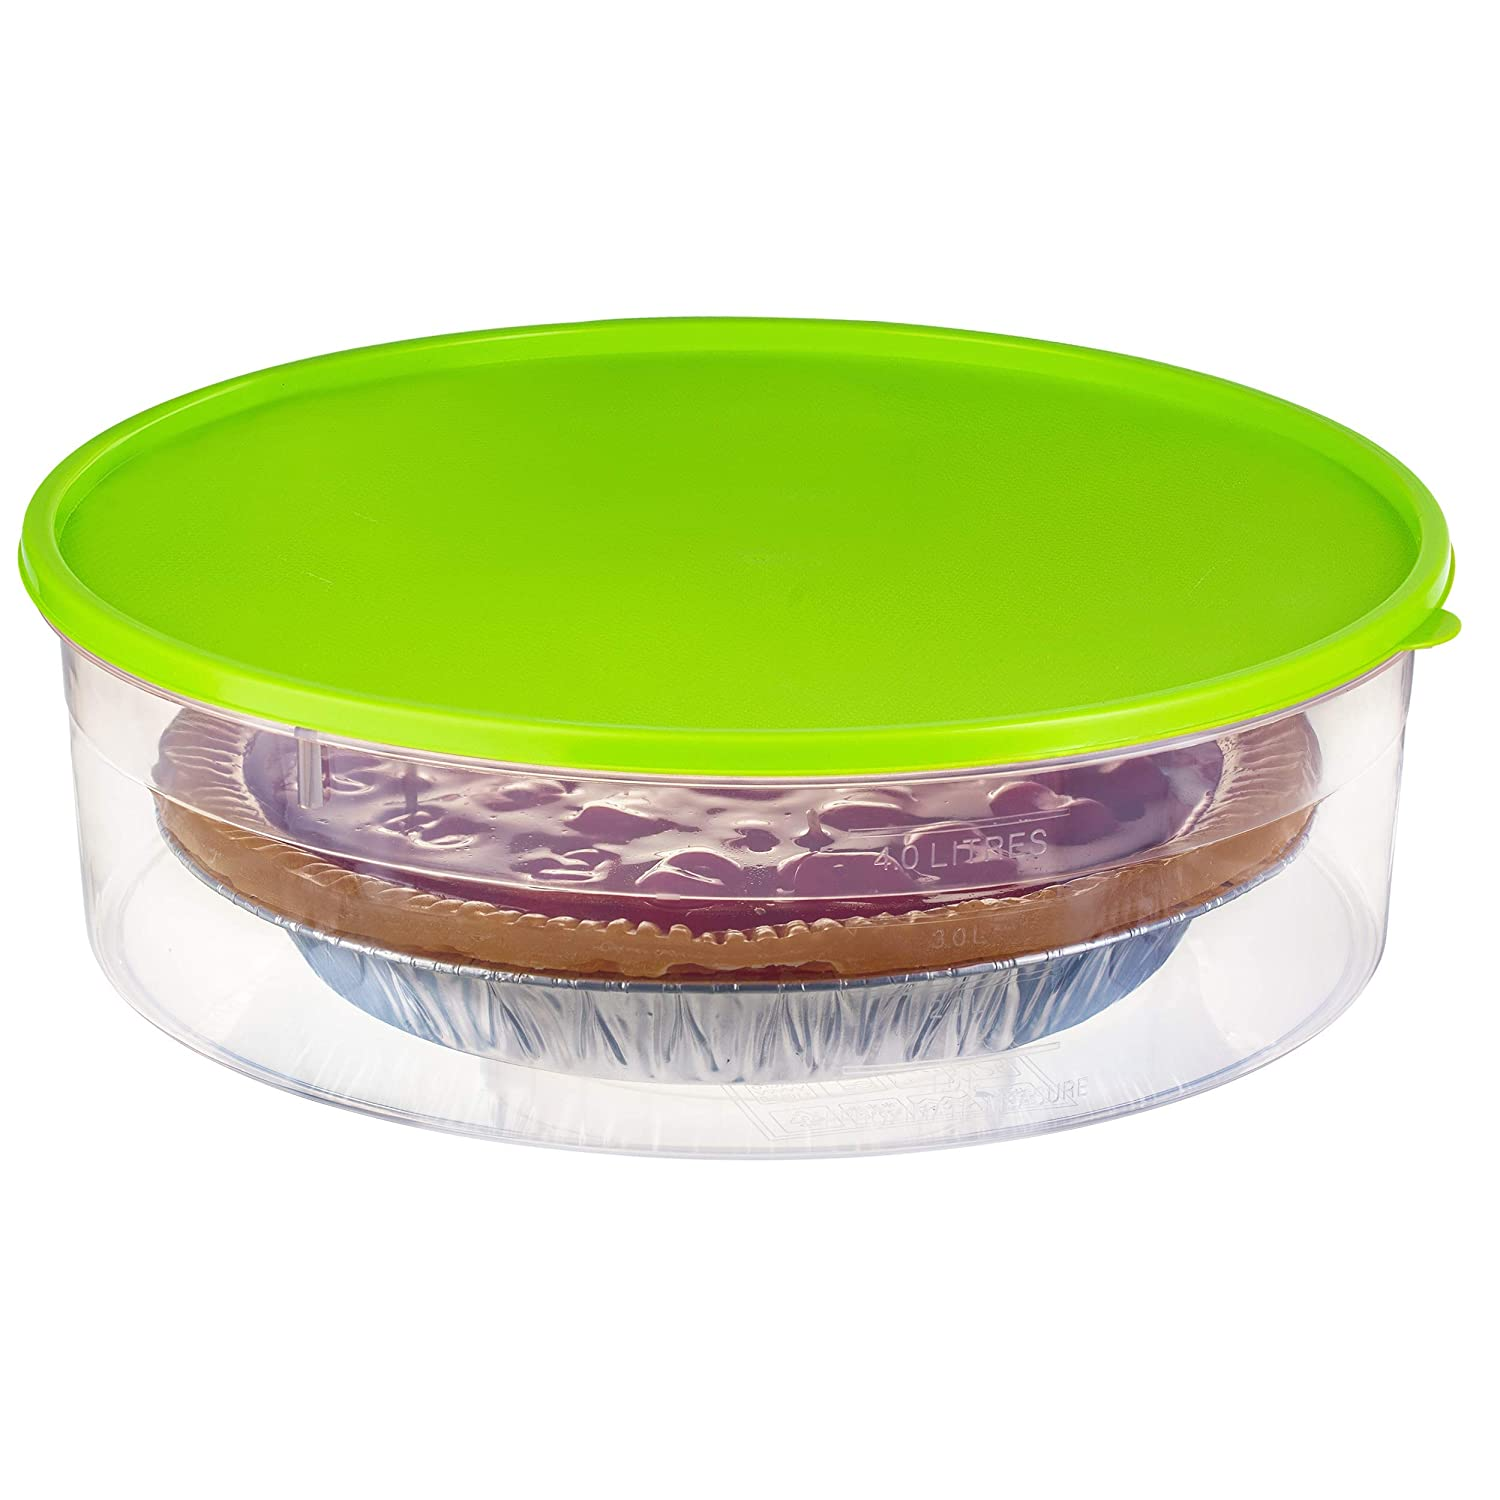 "Zilpoo Plastic Pie Container with Lid, 10.5"", Cupcake Carrier, Muffin, Tart, Cookie, Cake Holder, Round Freezer Storage Food Keeper with Cover, Green"